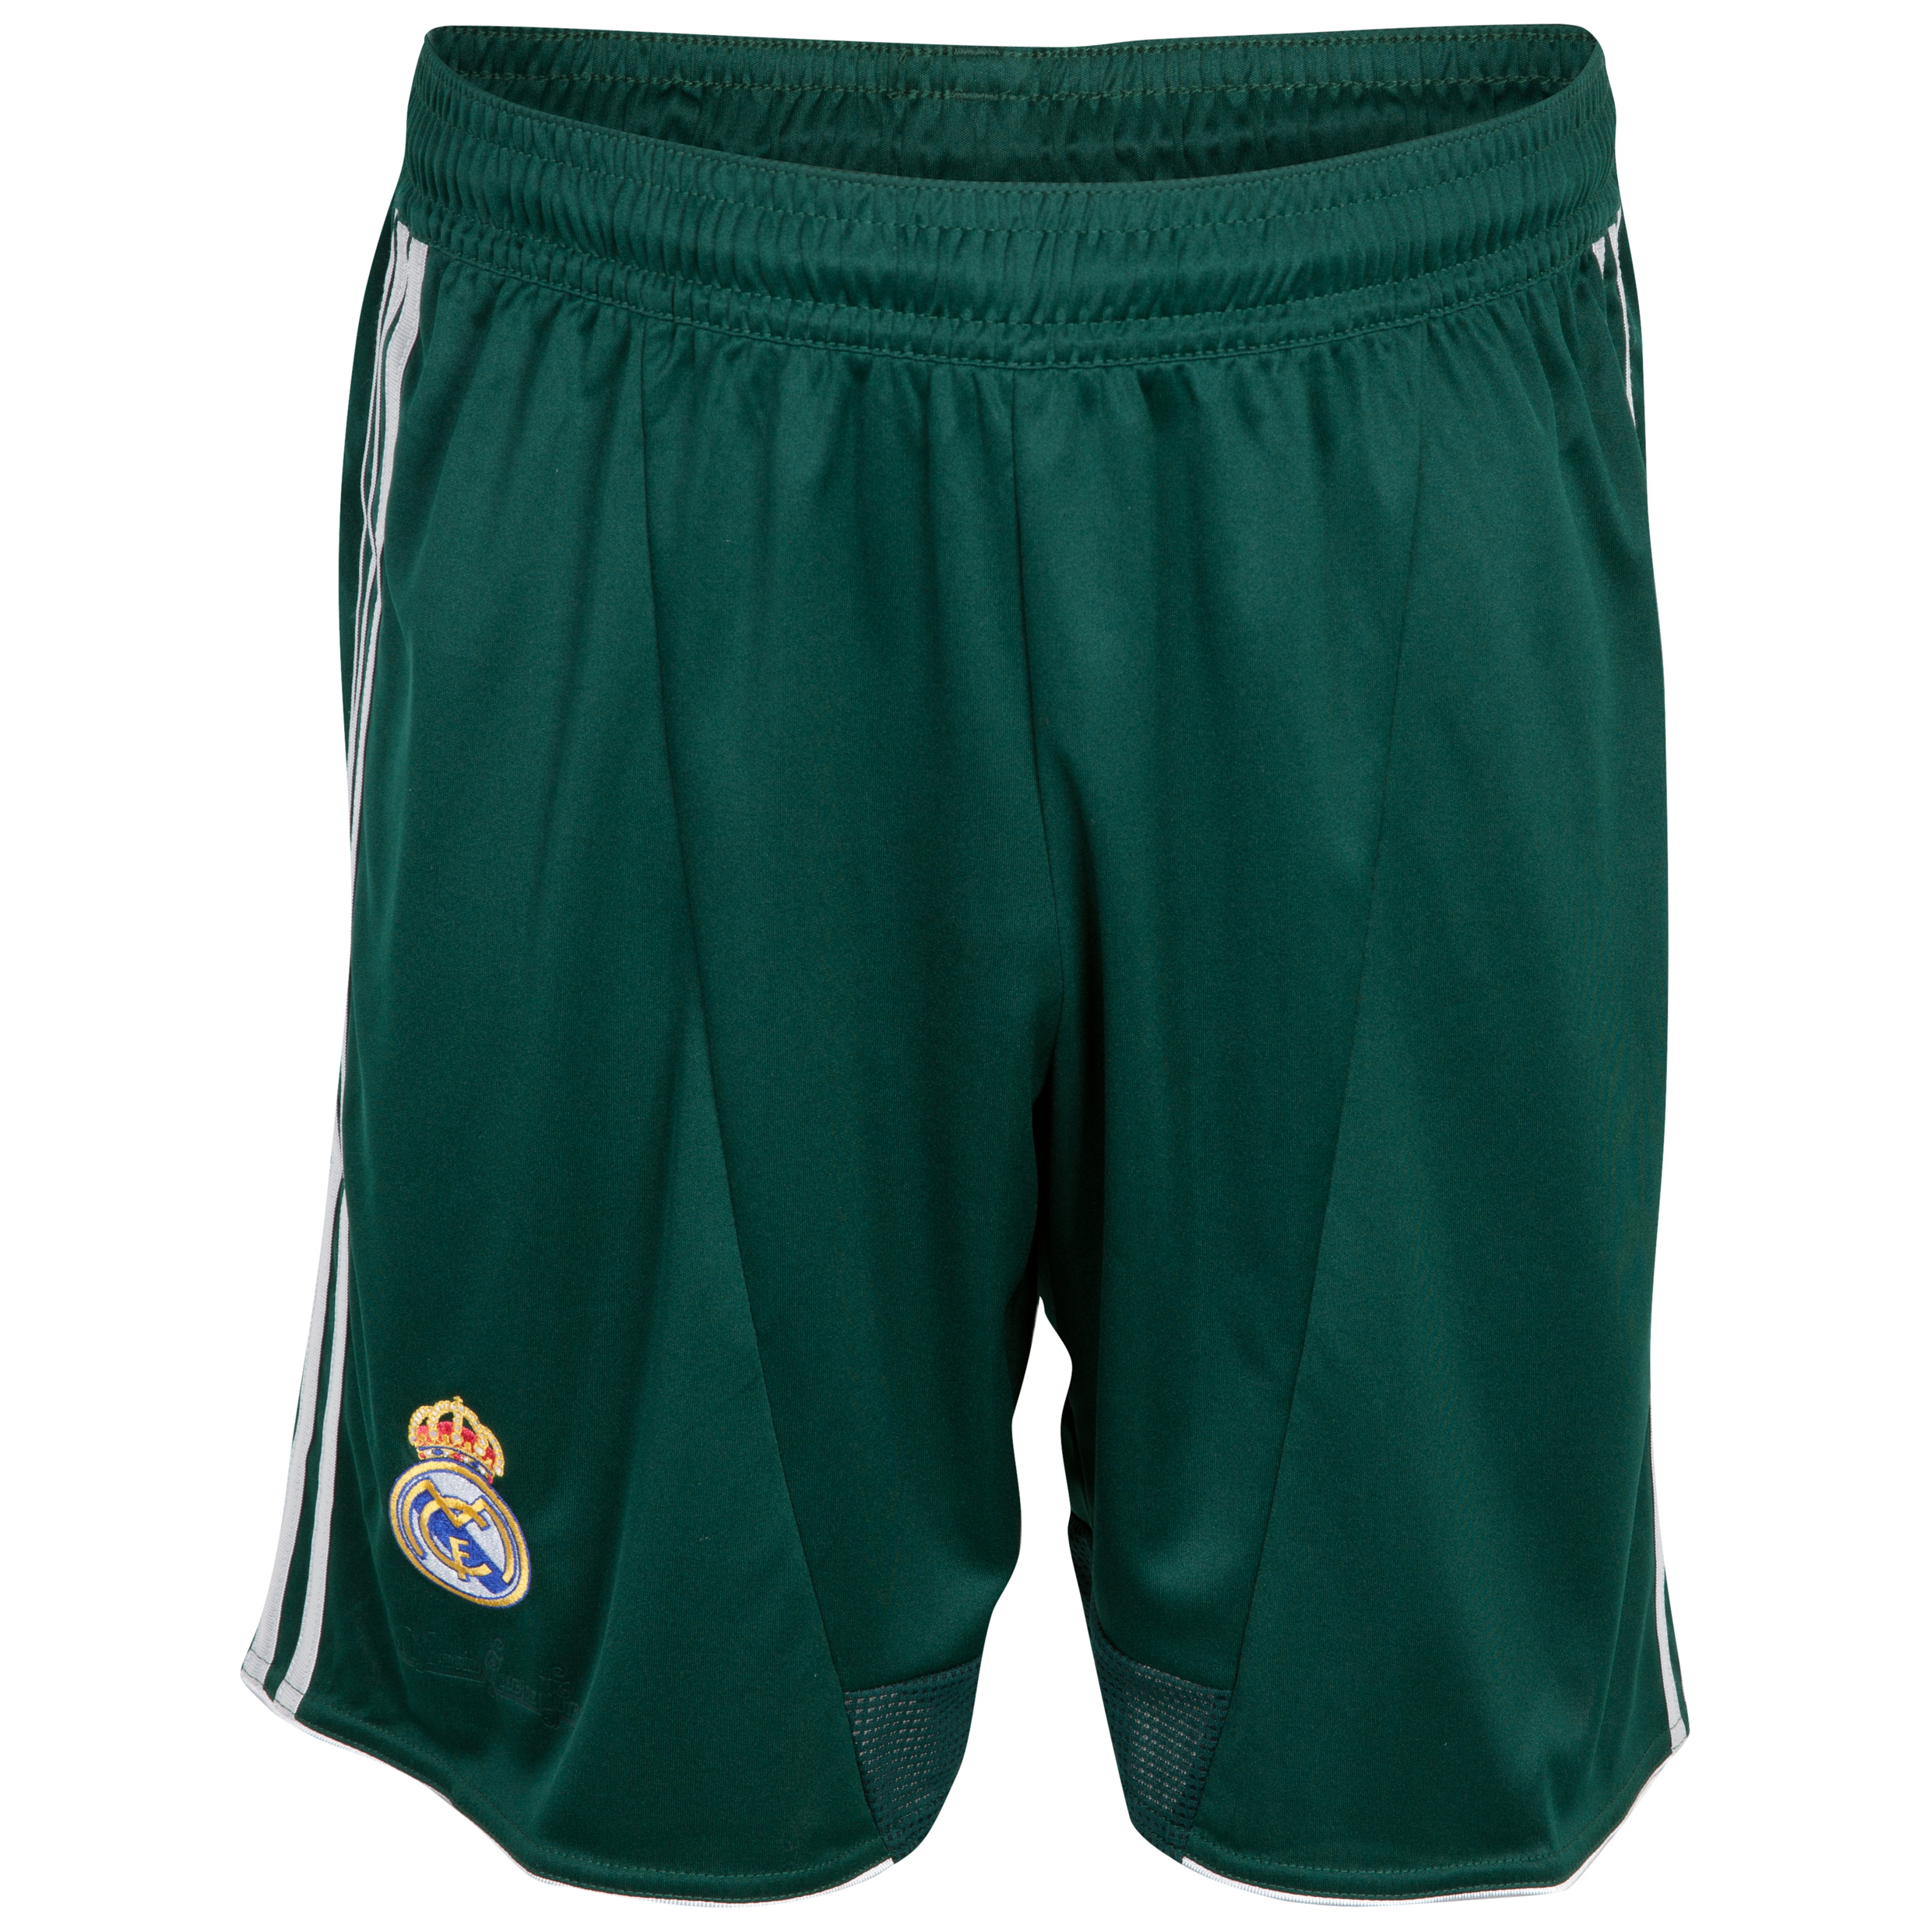 Real Madrid Third Short 2012/13